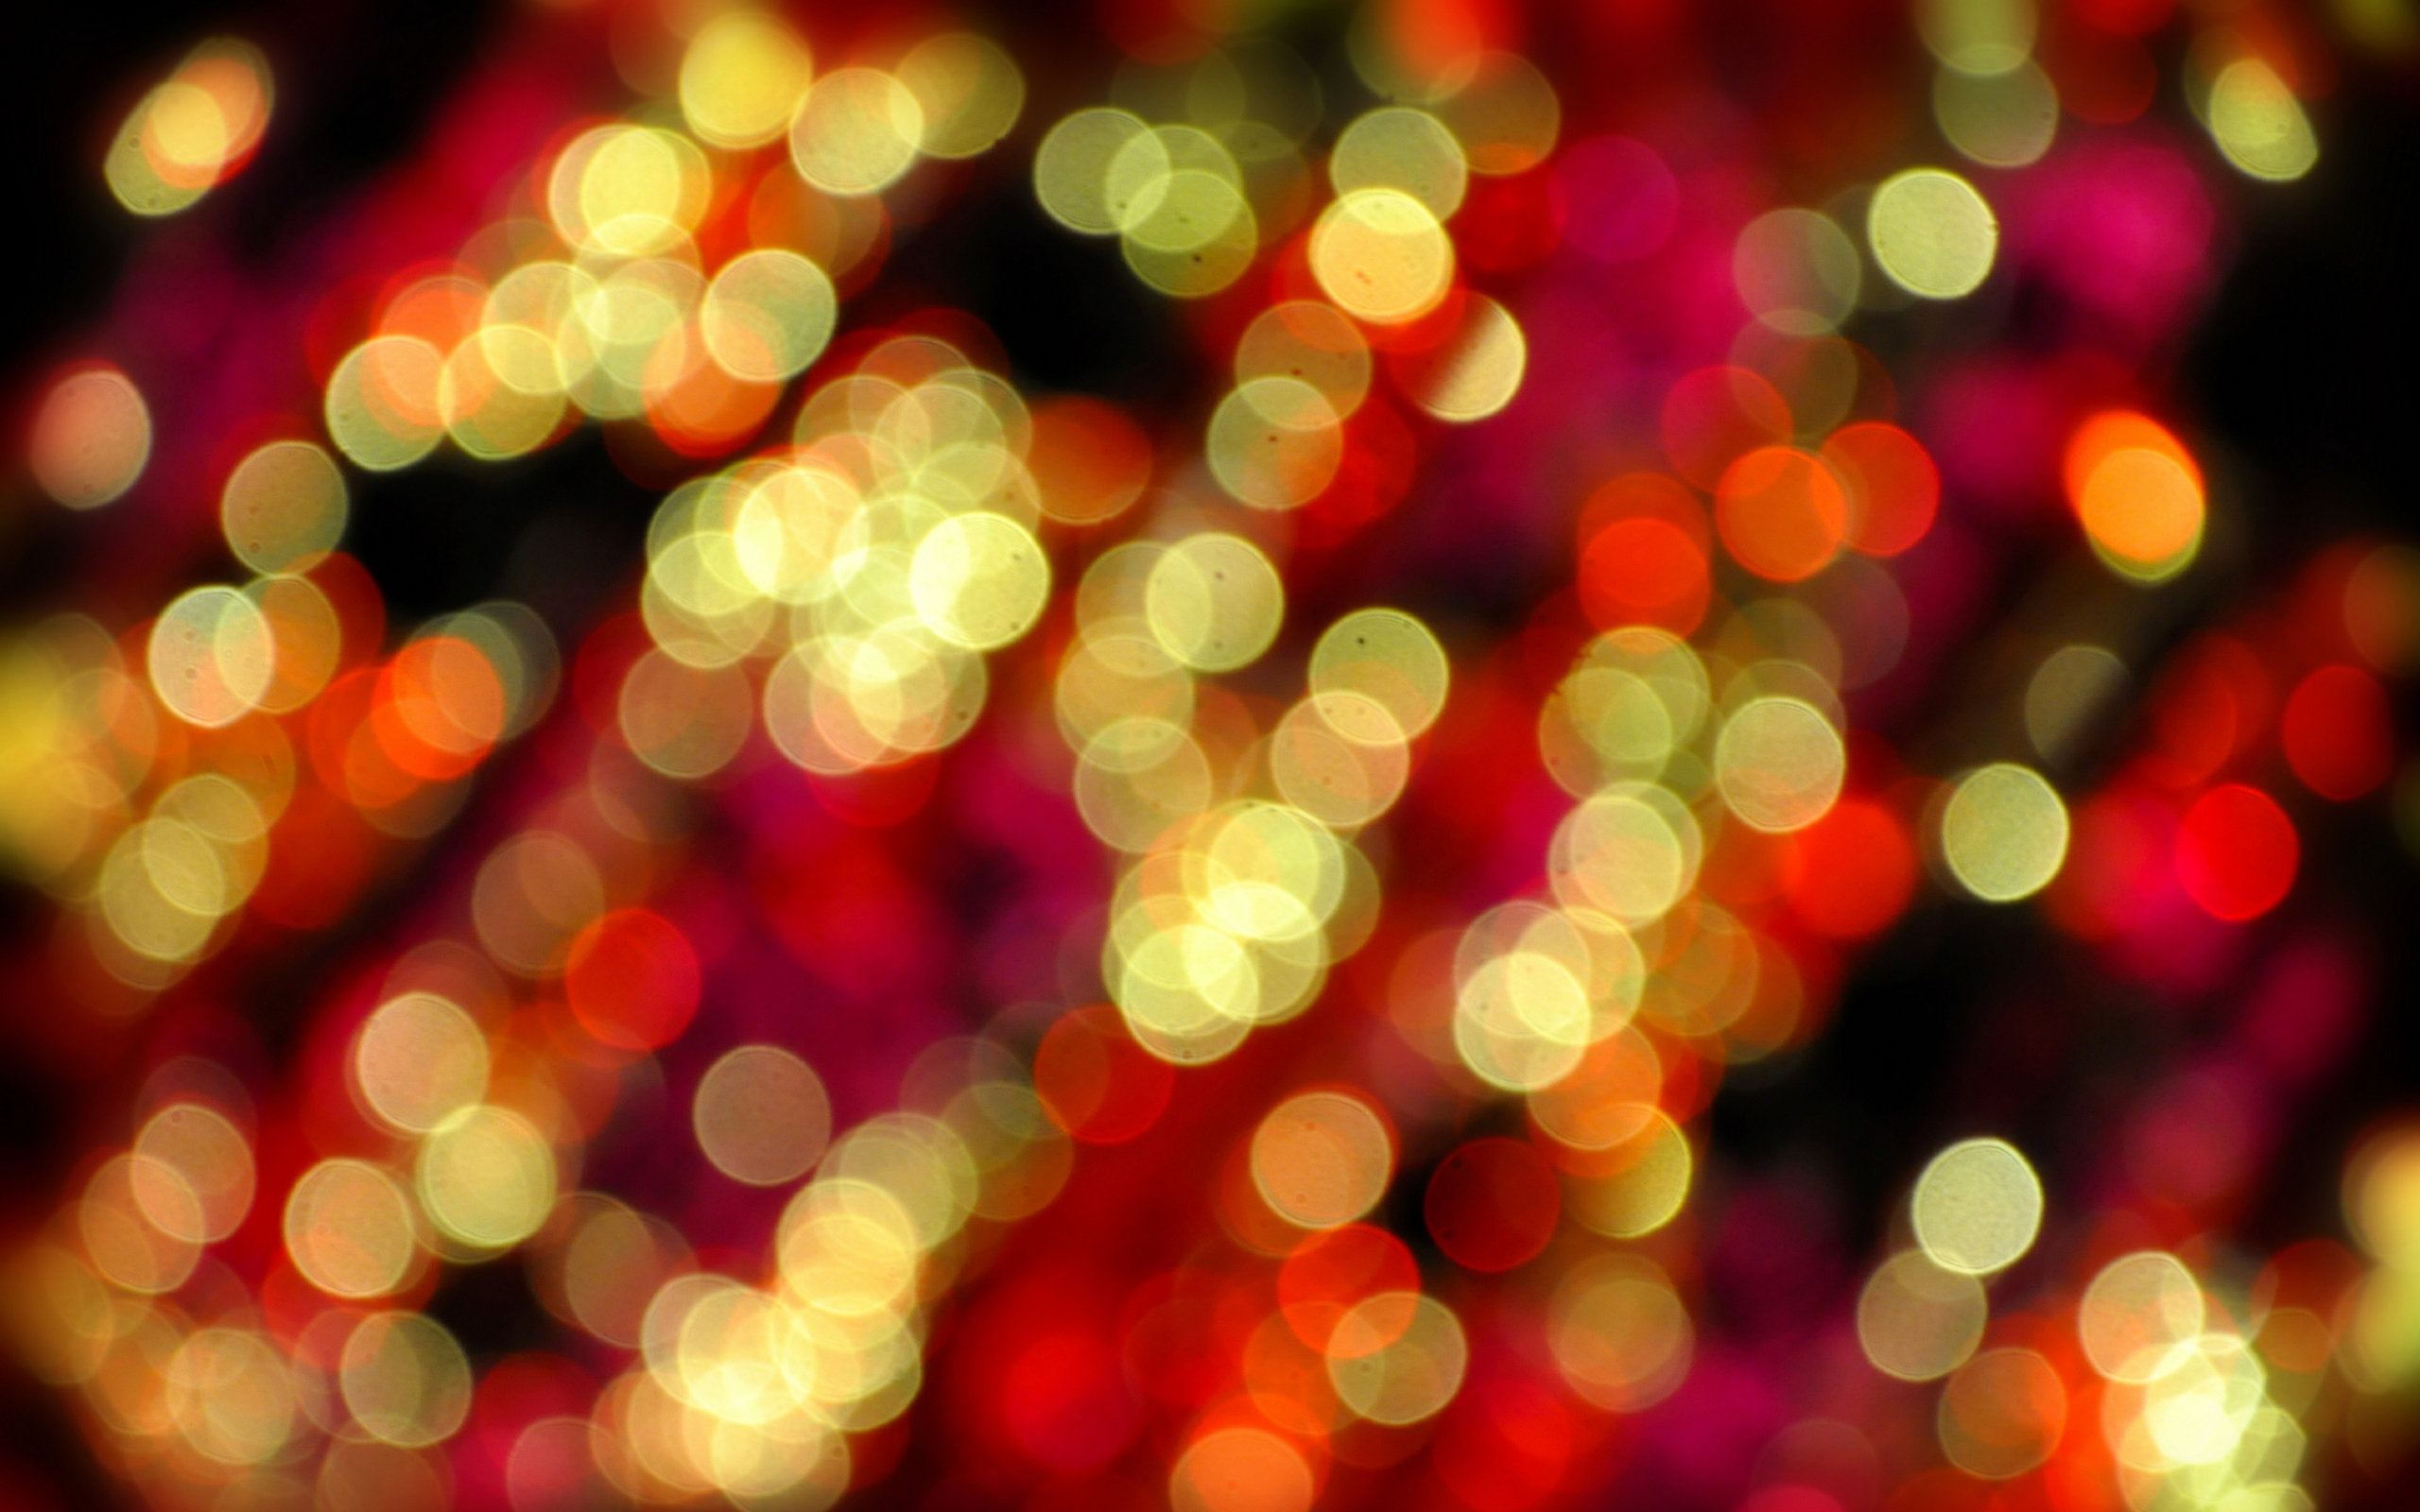 Christmas Bokeh Photography HD Wallpaper, Background Images